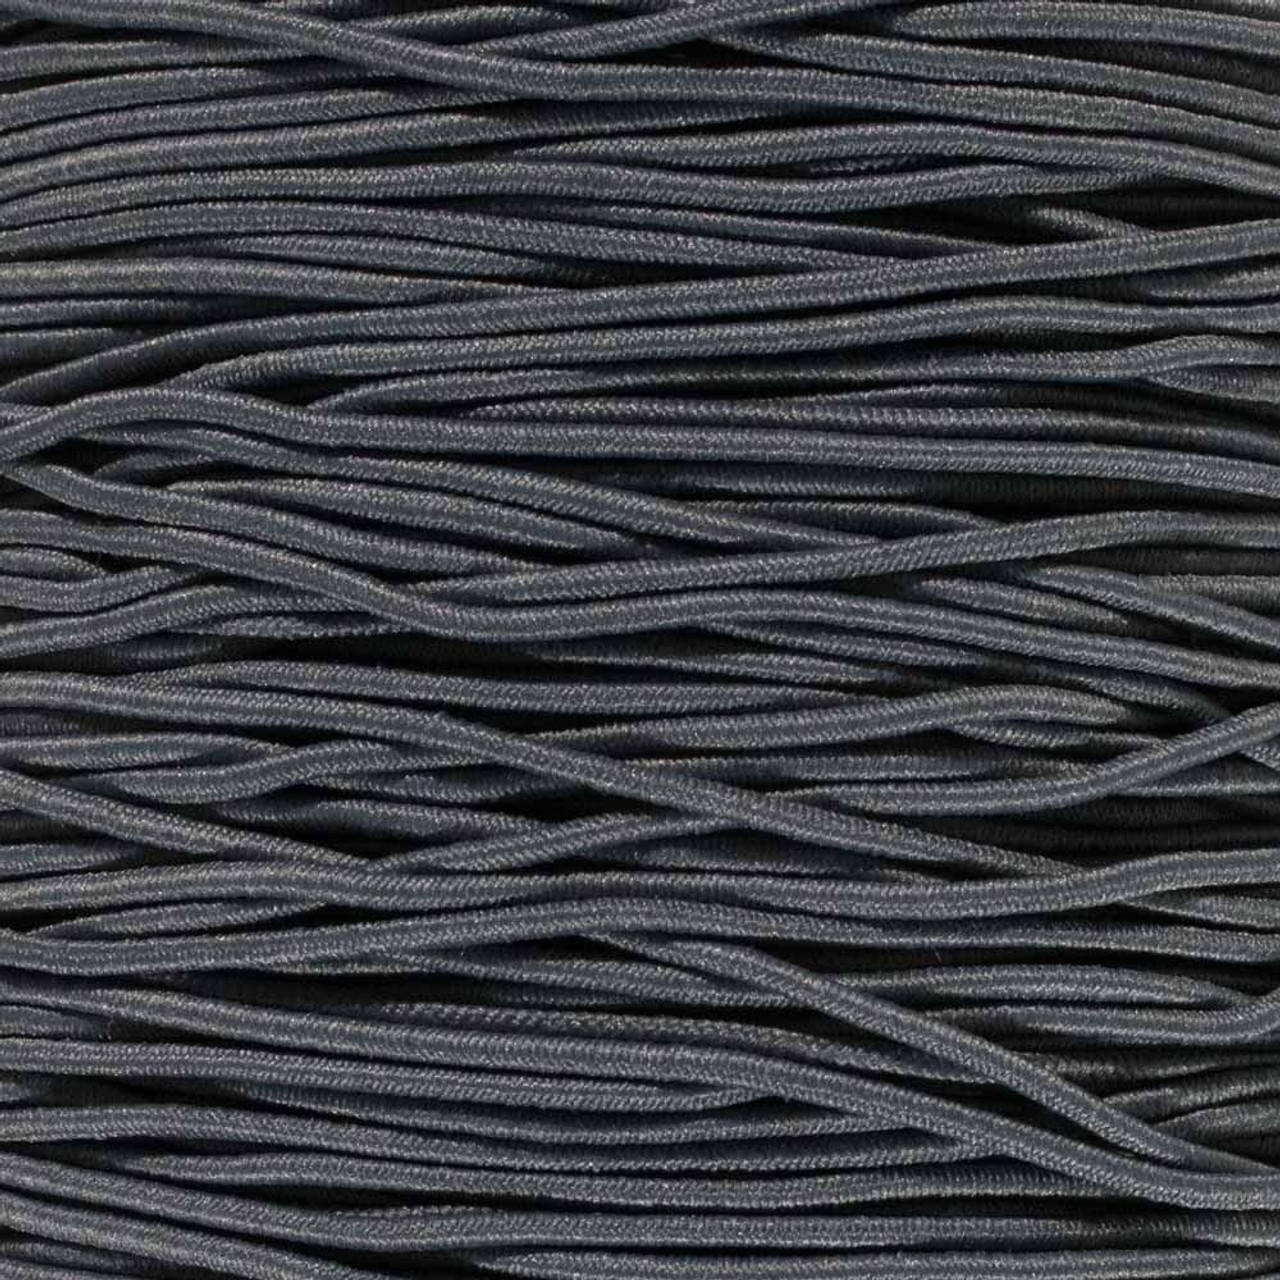 Charcoal Gray 1 16 Inch Elastic Cord Paracord Planet